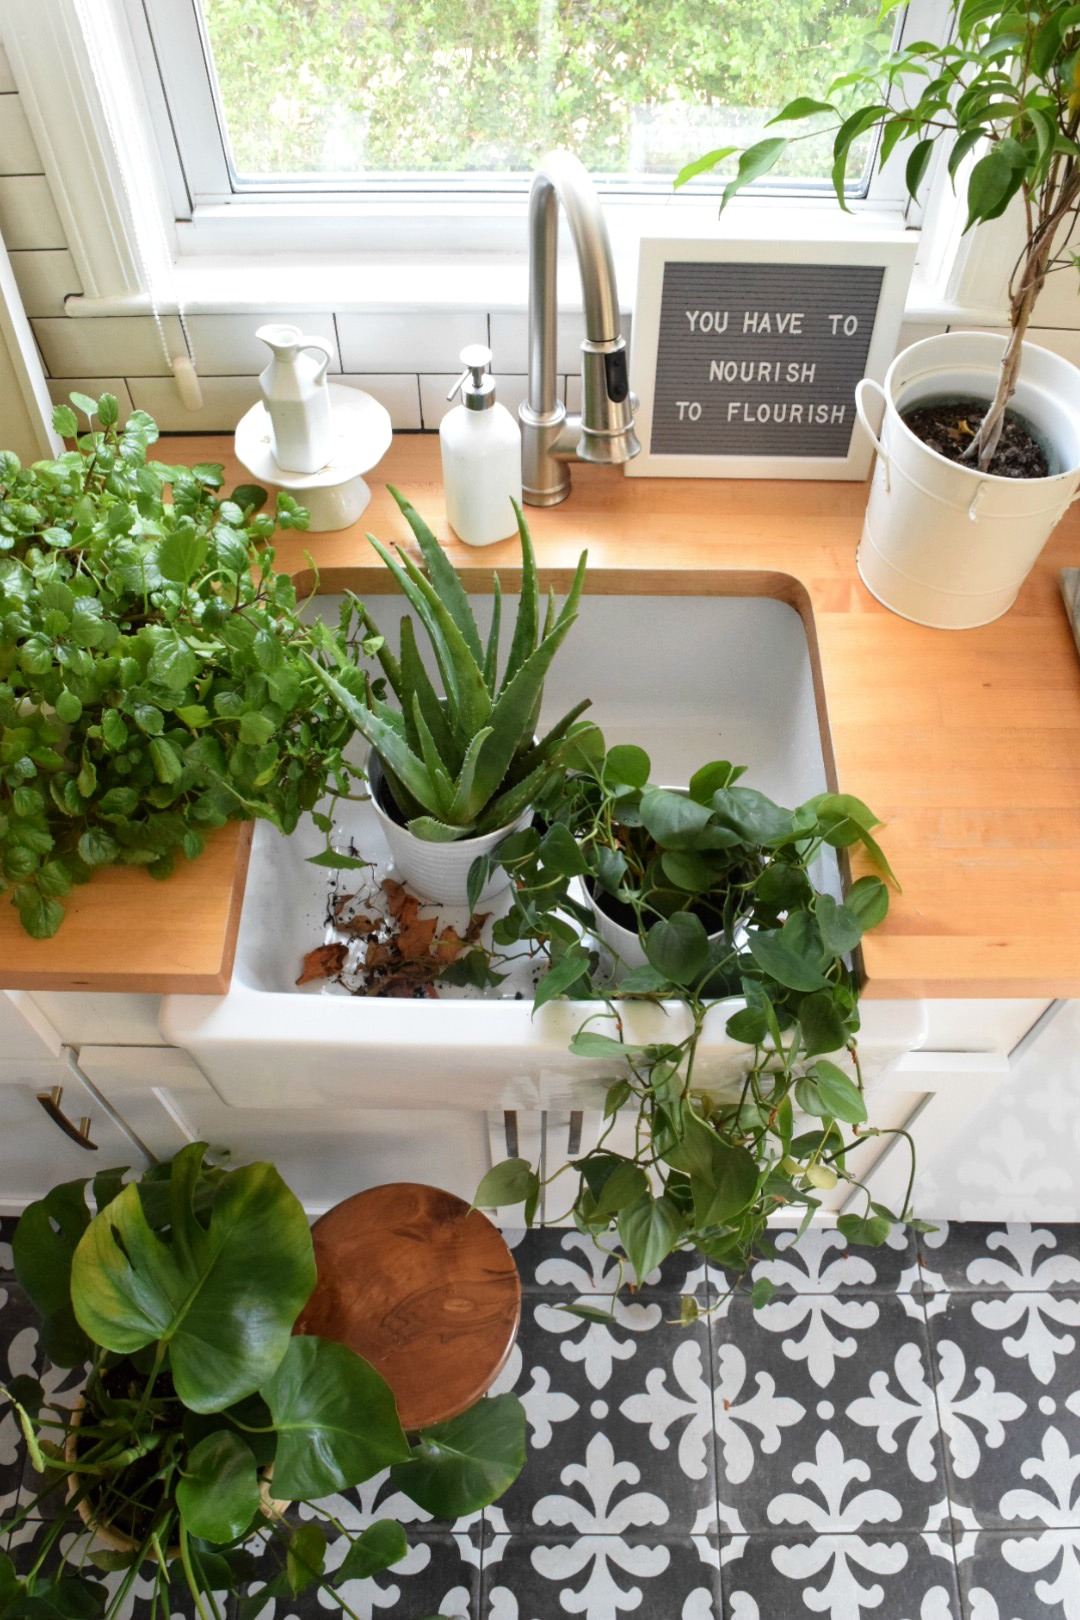 House Plants: 5 House Plants That Are Low Maintenance- My Tips On